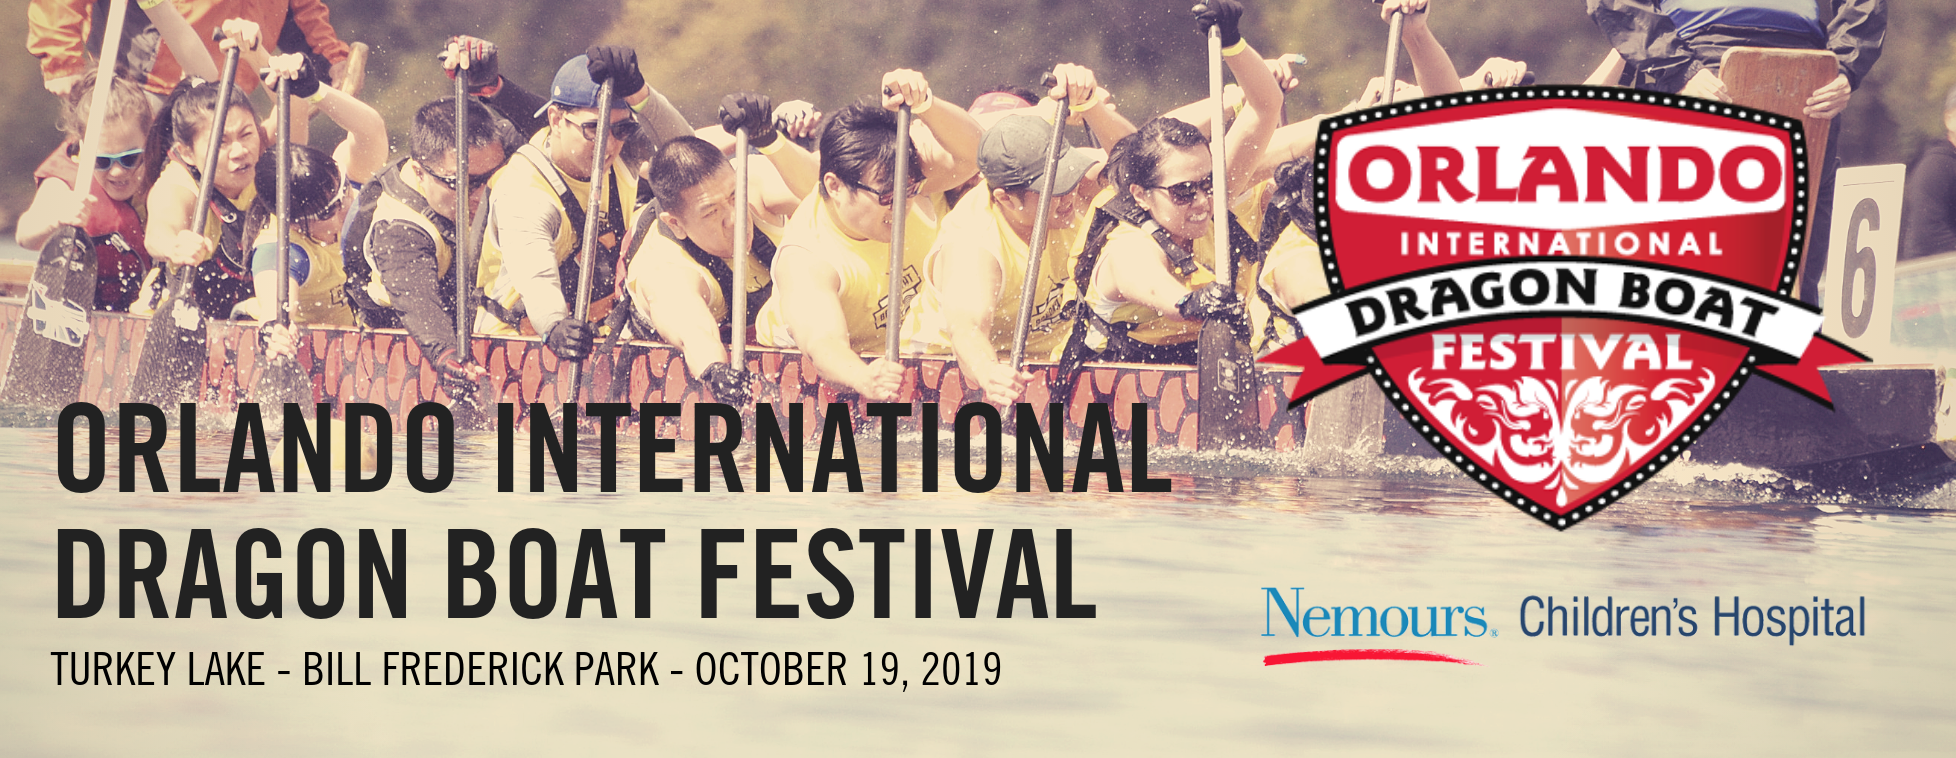 2019 Orlando International Dragon Boat Festival